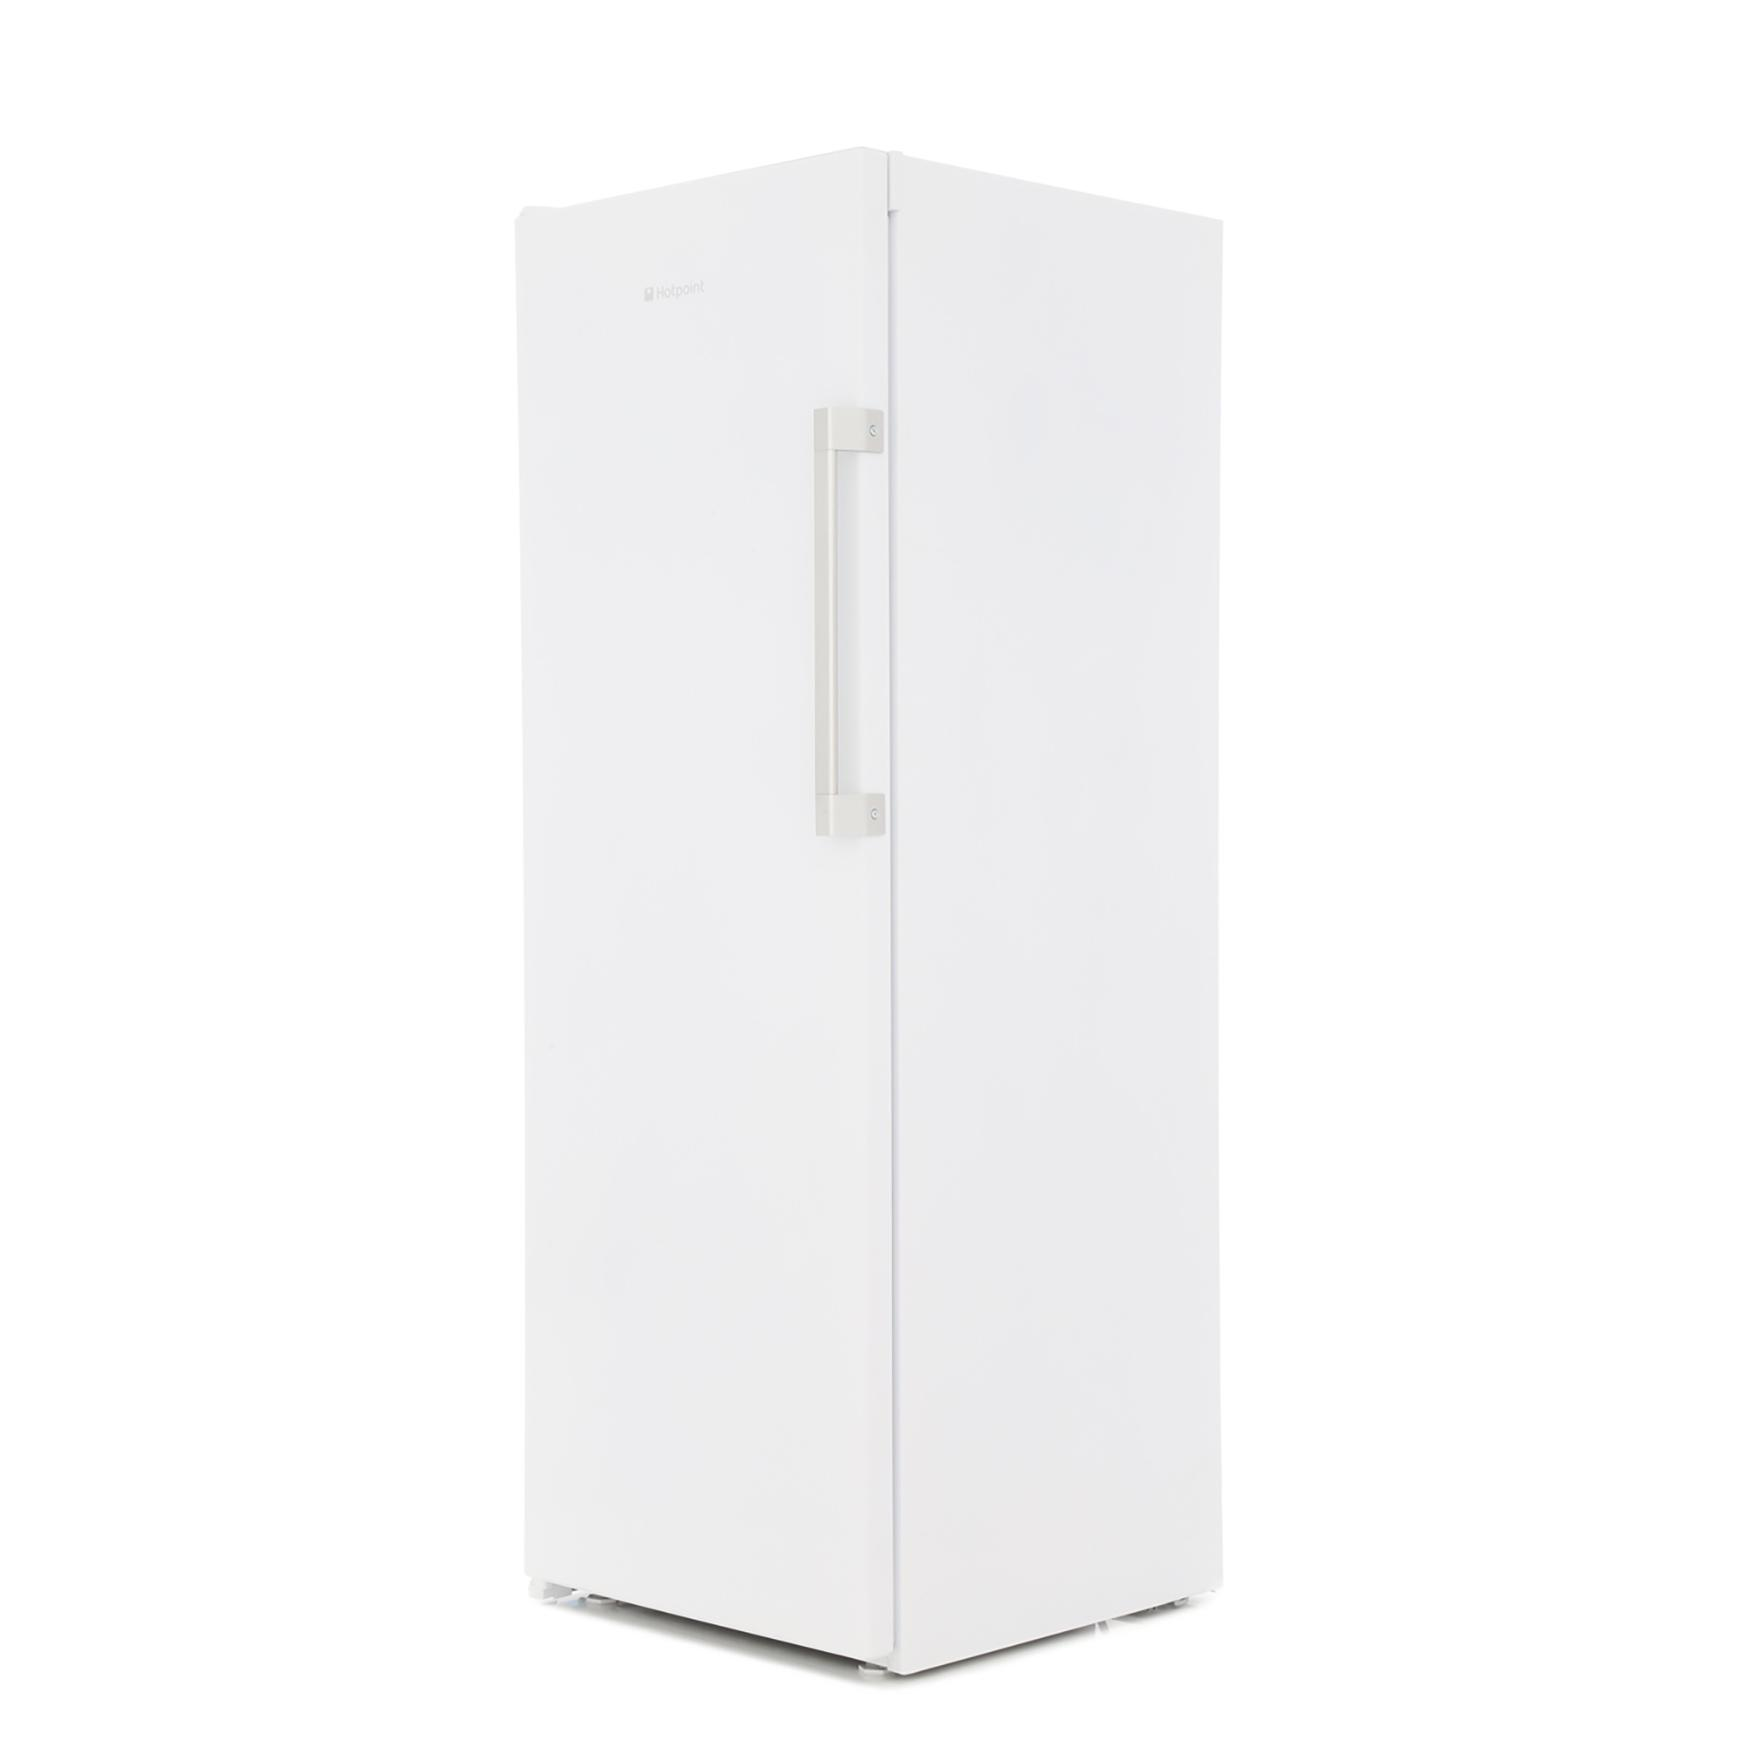 Hotpoint UH6F1CWUK Tall Freezer